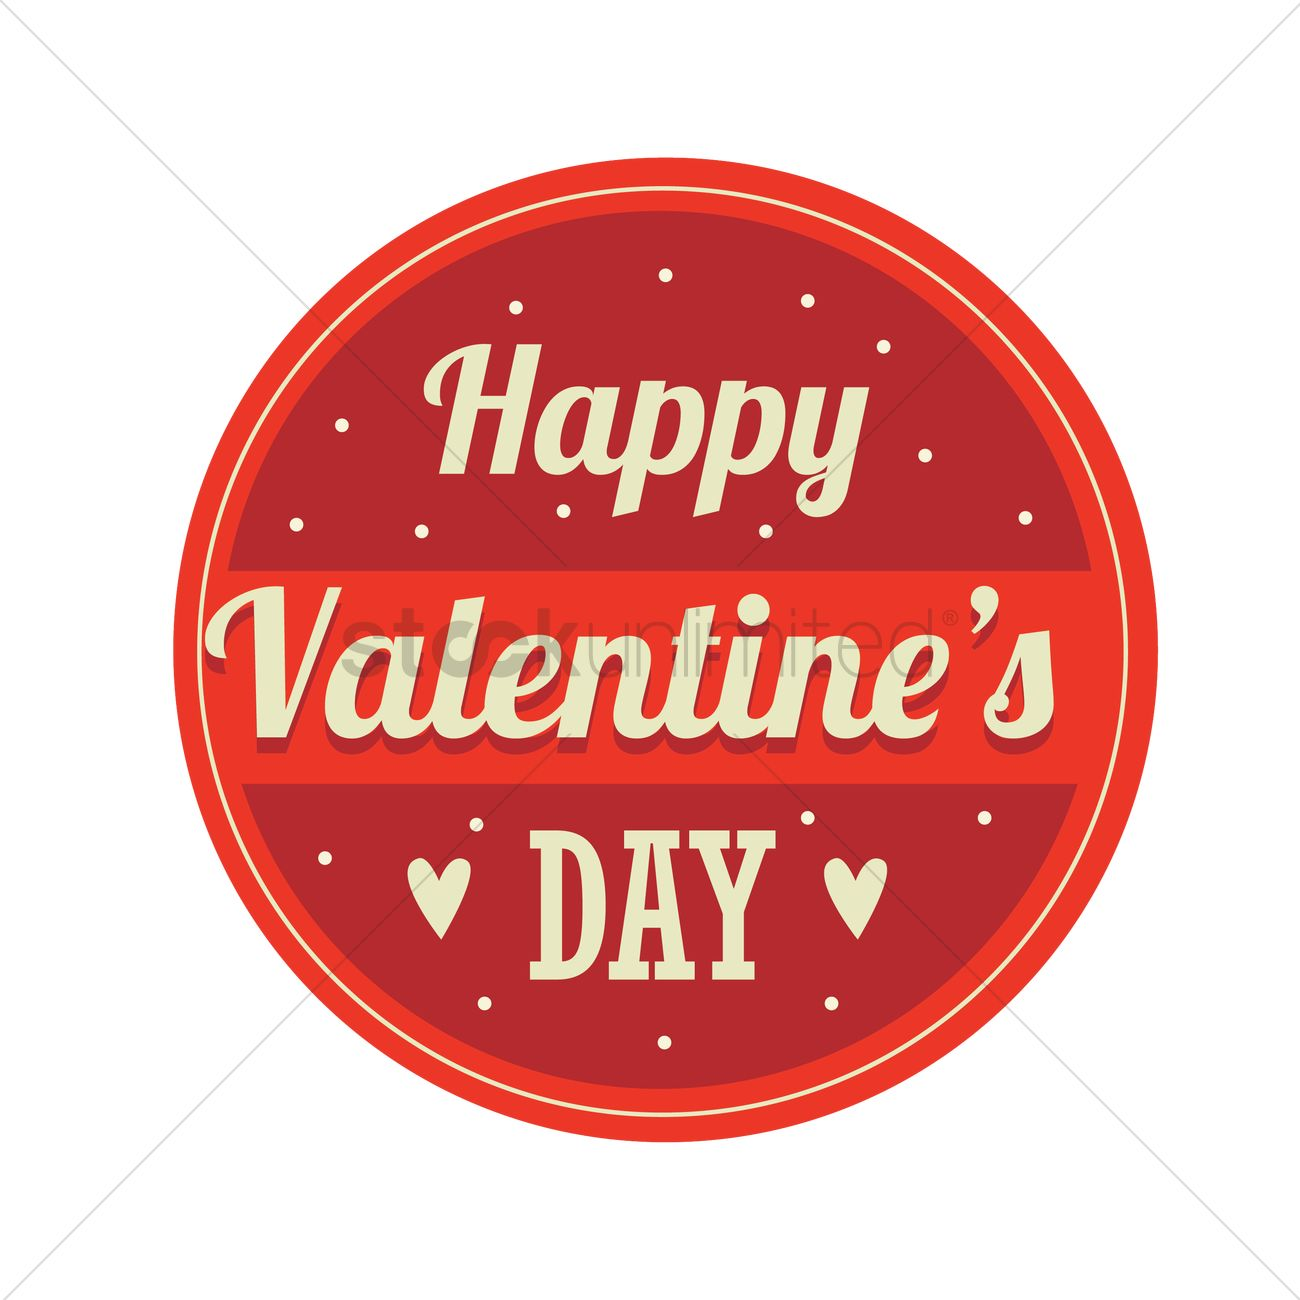 Happy Valentines Day Label Vector Image 1708262 Stockunlimited